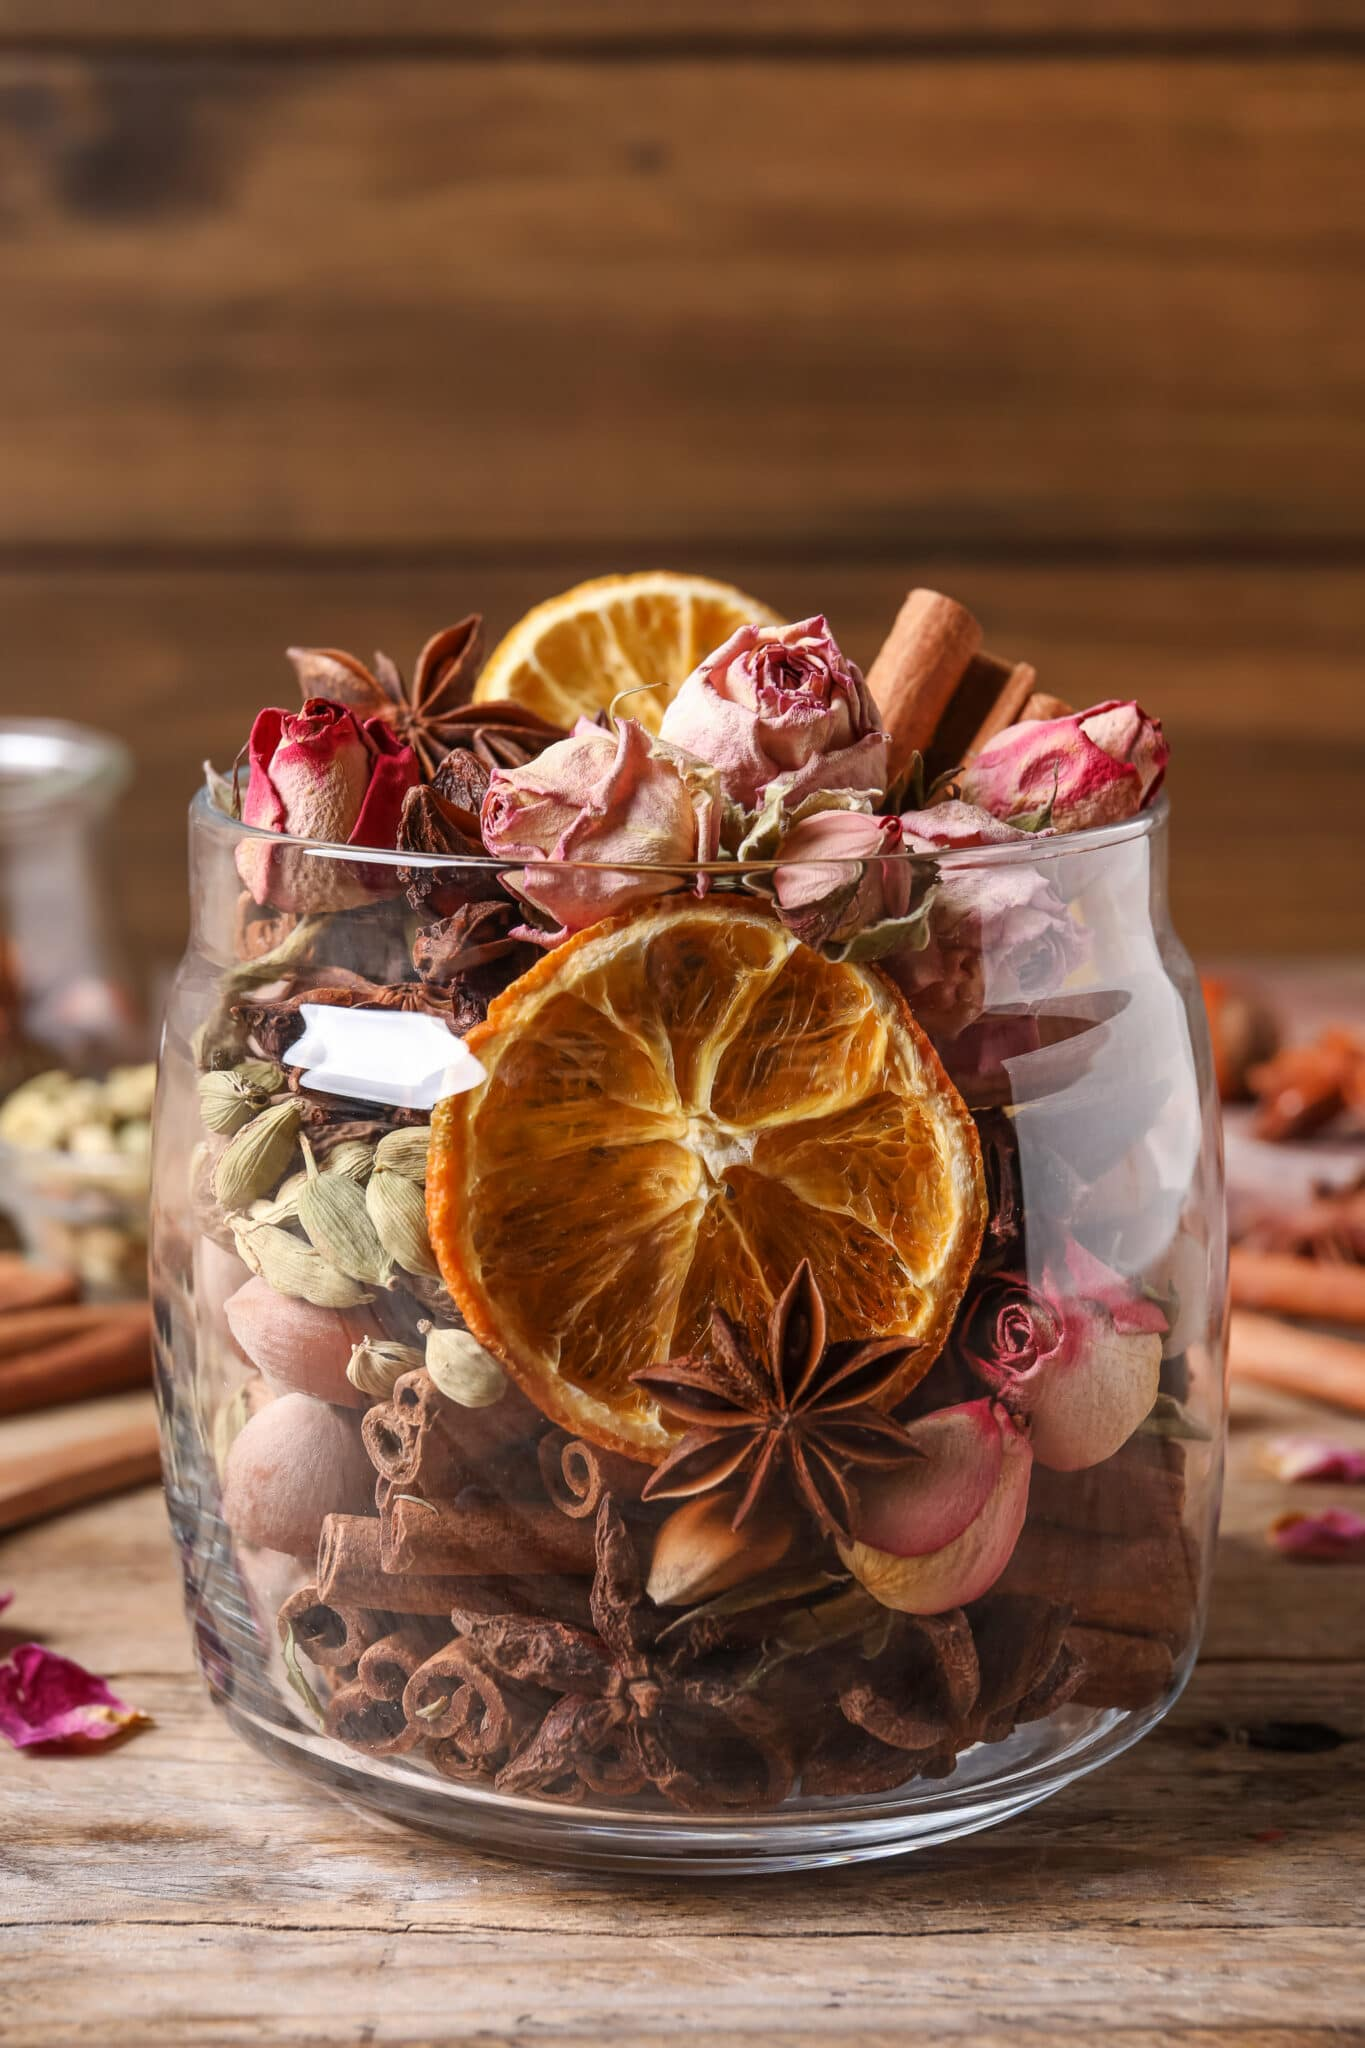 Spicy potpourri in a glass jar against a rustic wooden backdrop.